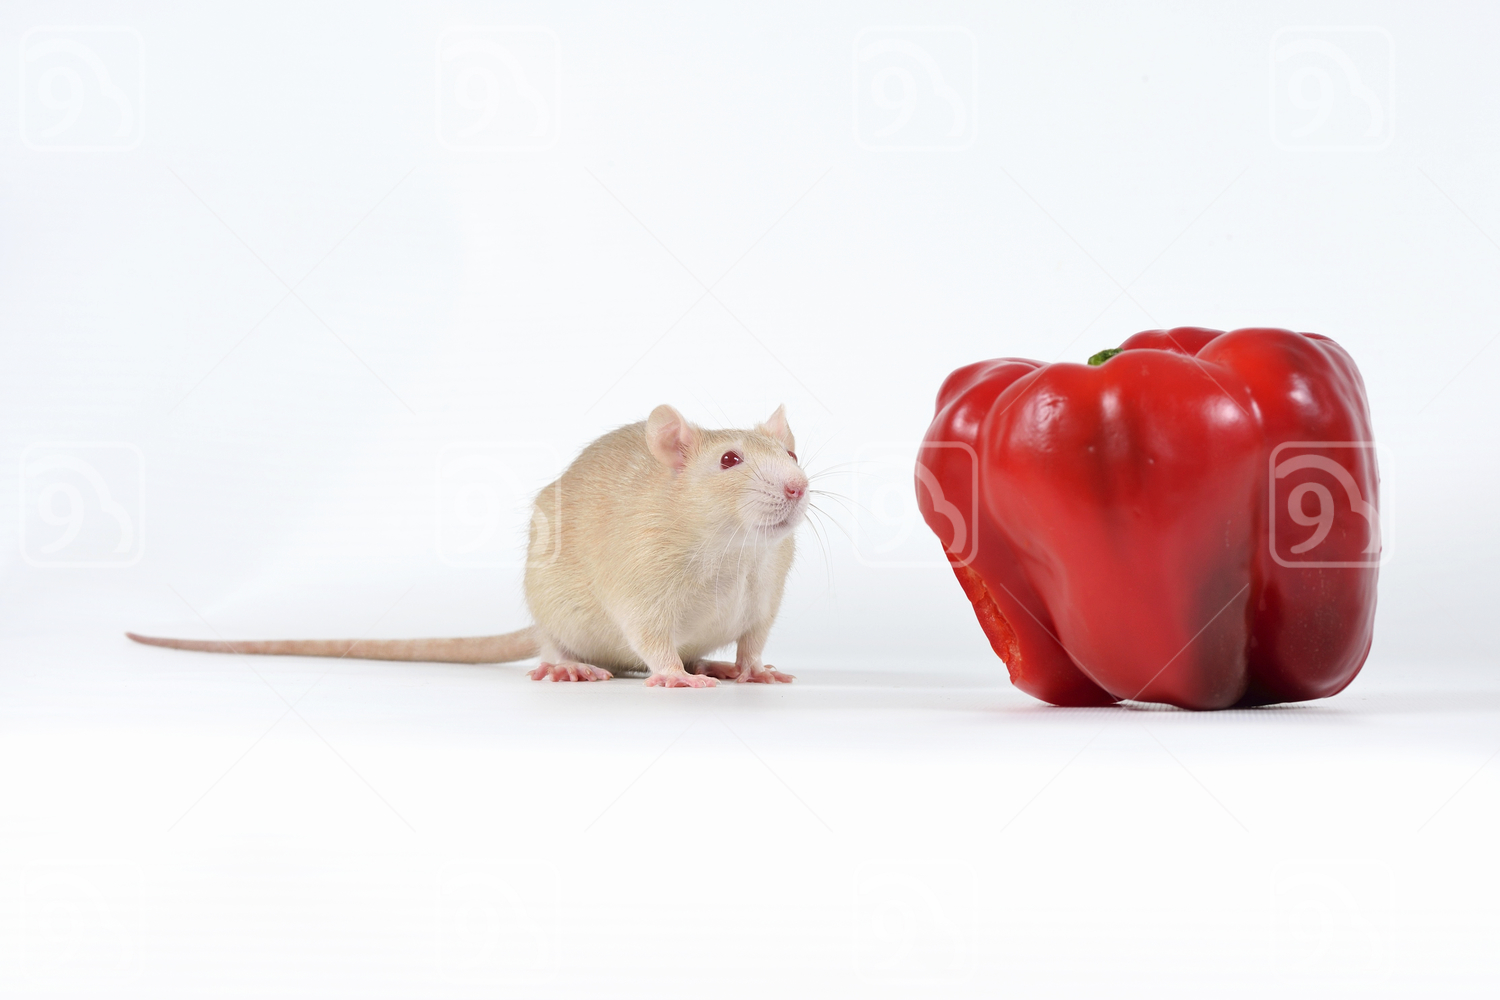 Brown Rat and apple